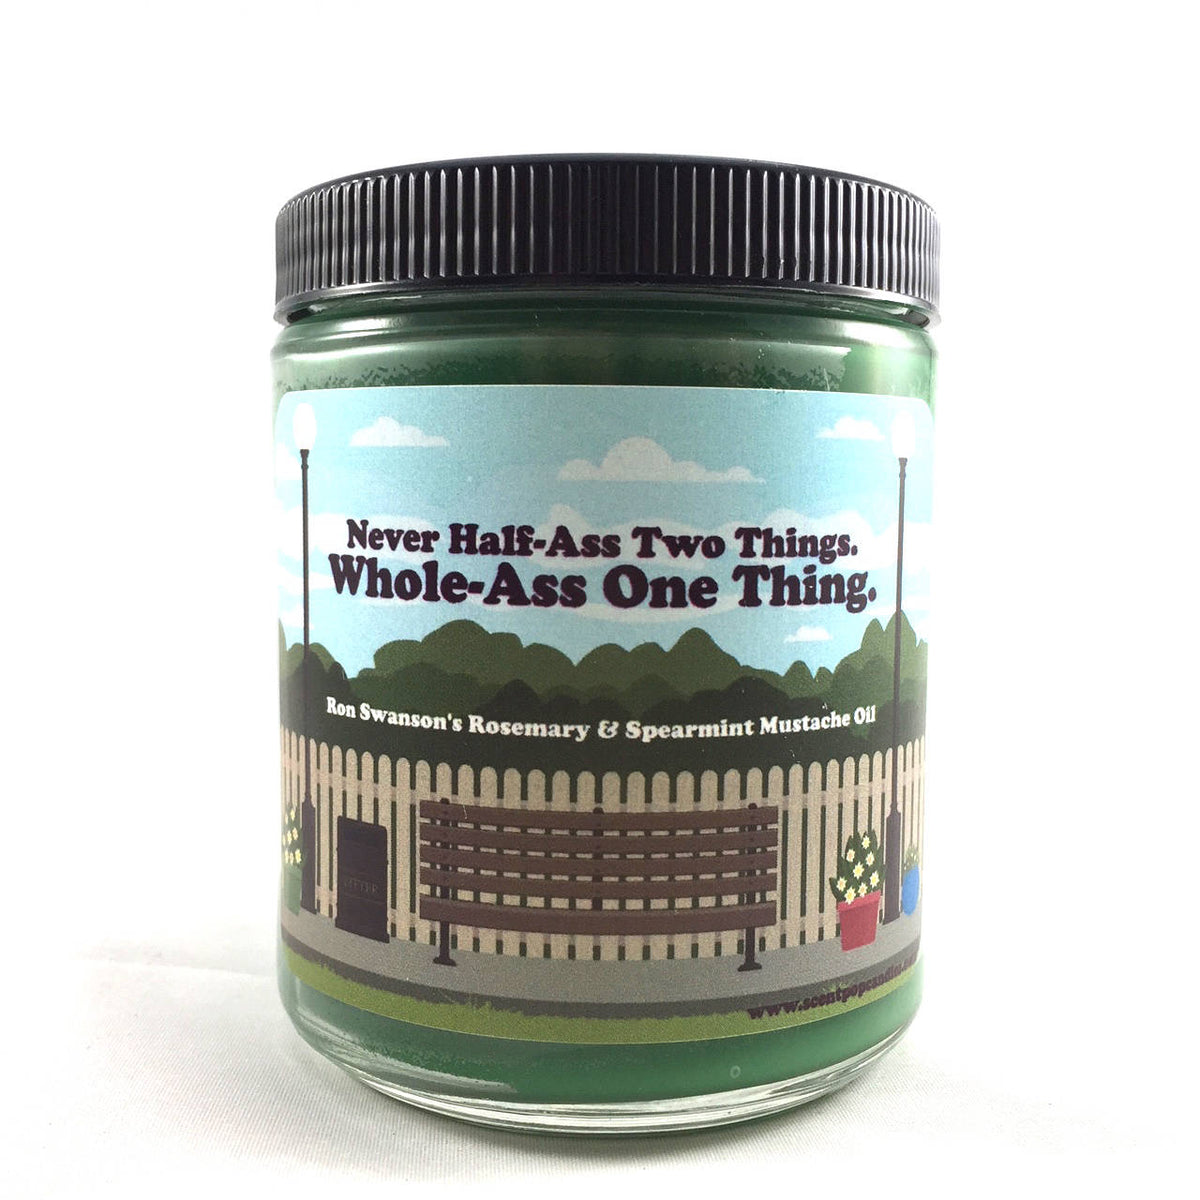 Never Half-Ass Two Things...Ron Swanson, Parks & Rec Inspired Soy Candle